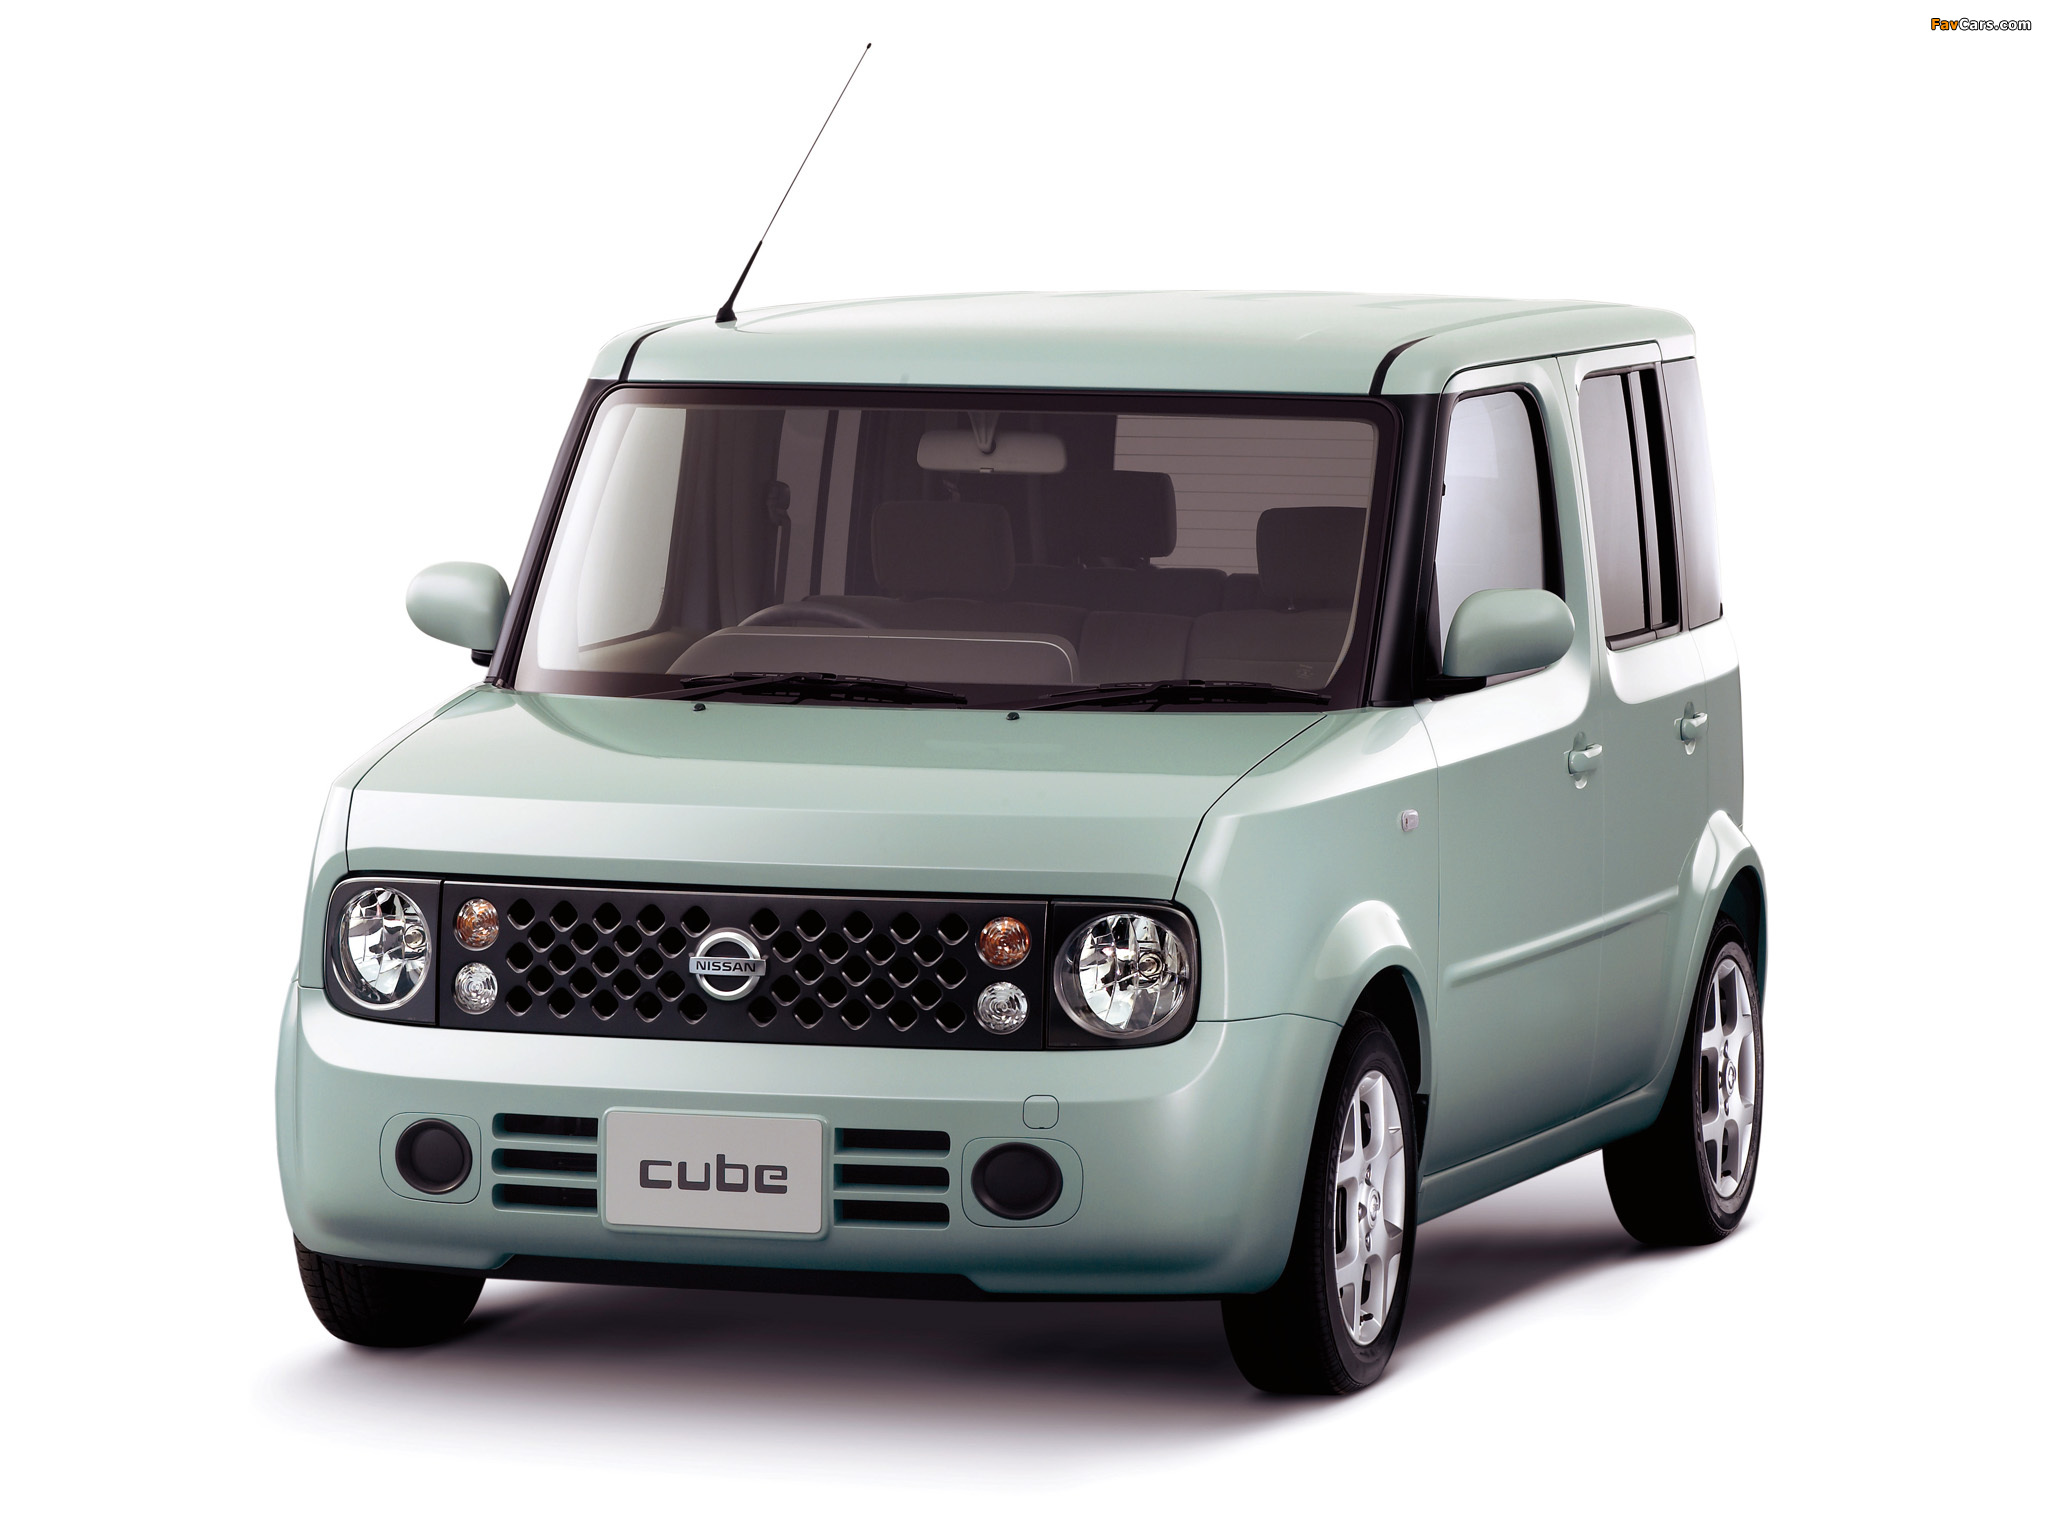 Images of Nissan Cube Z11 200208 2048x1536 2048x1536